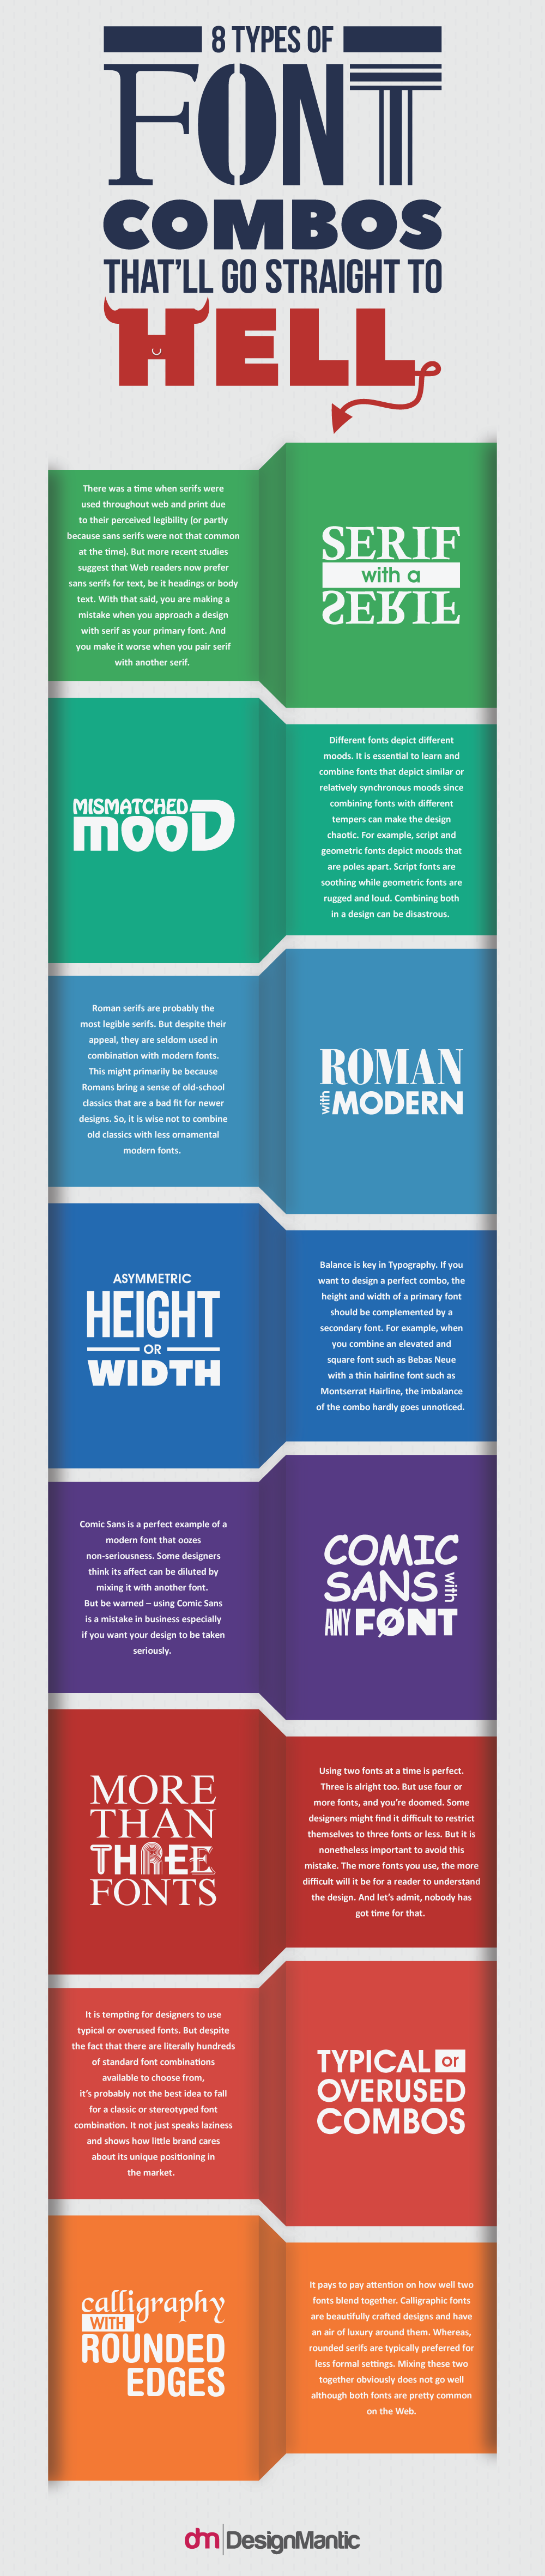 Infographic: Eight Types Of Font Combos That Don't Go Well Together